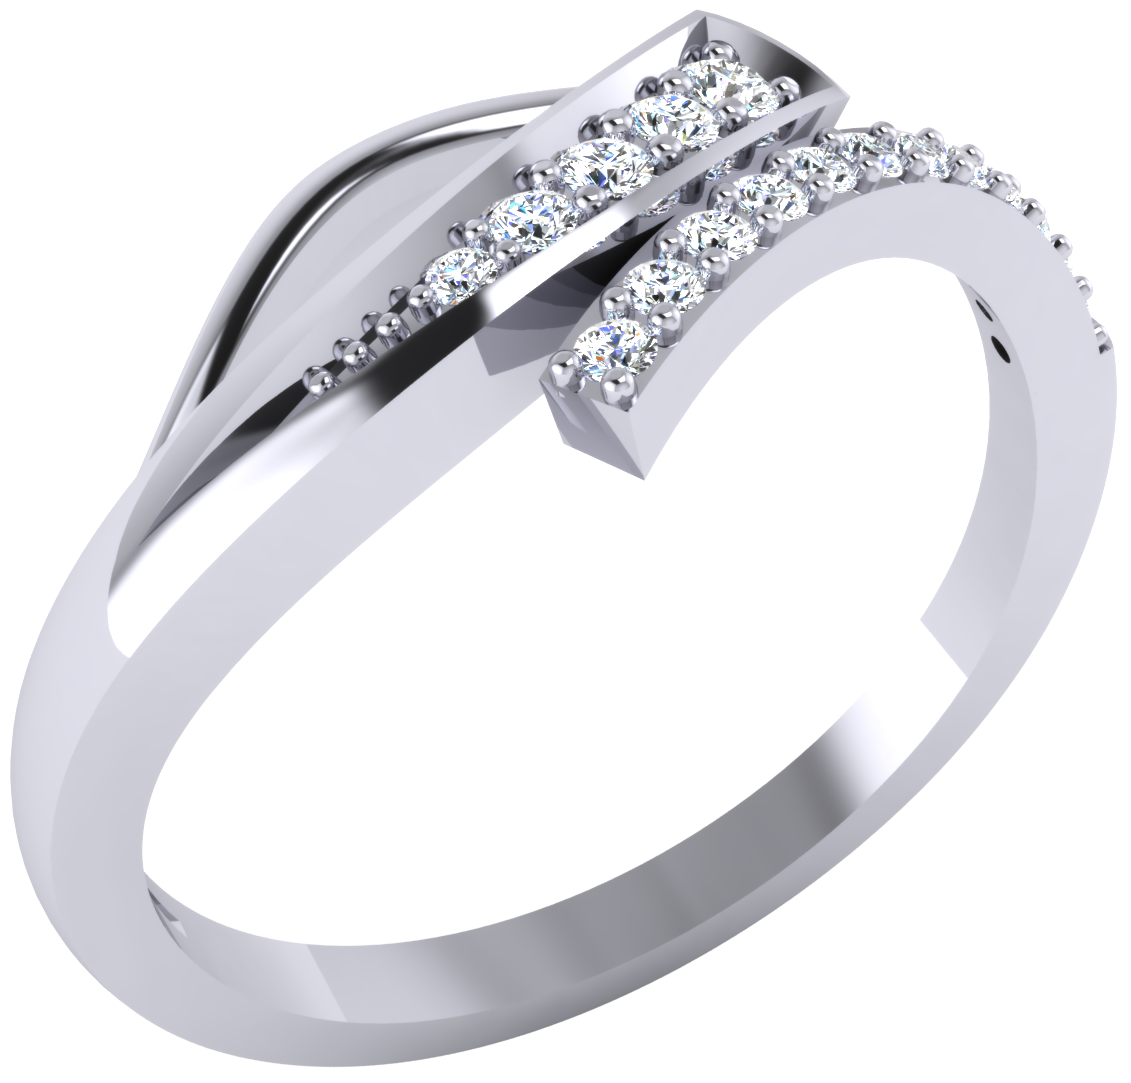 GO4CARAT 92.5 Silver Ring.